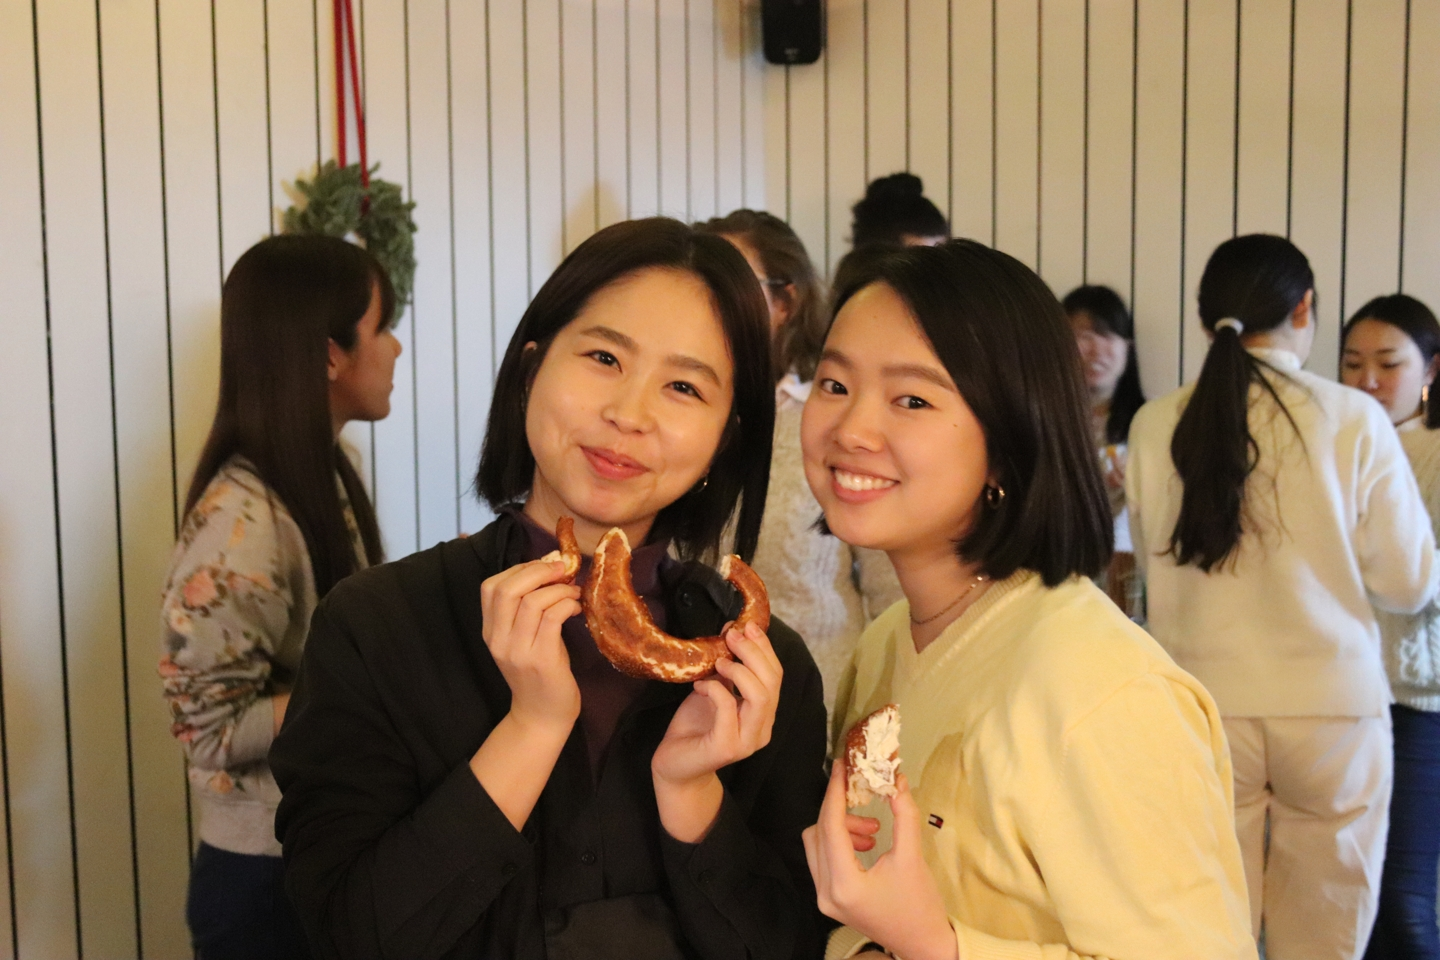 Two girls smiling and holding pretzels in their hands